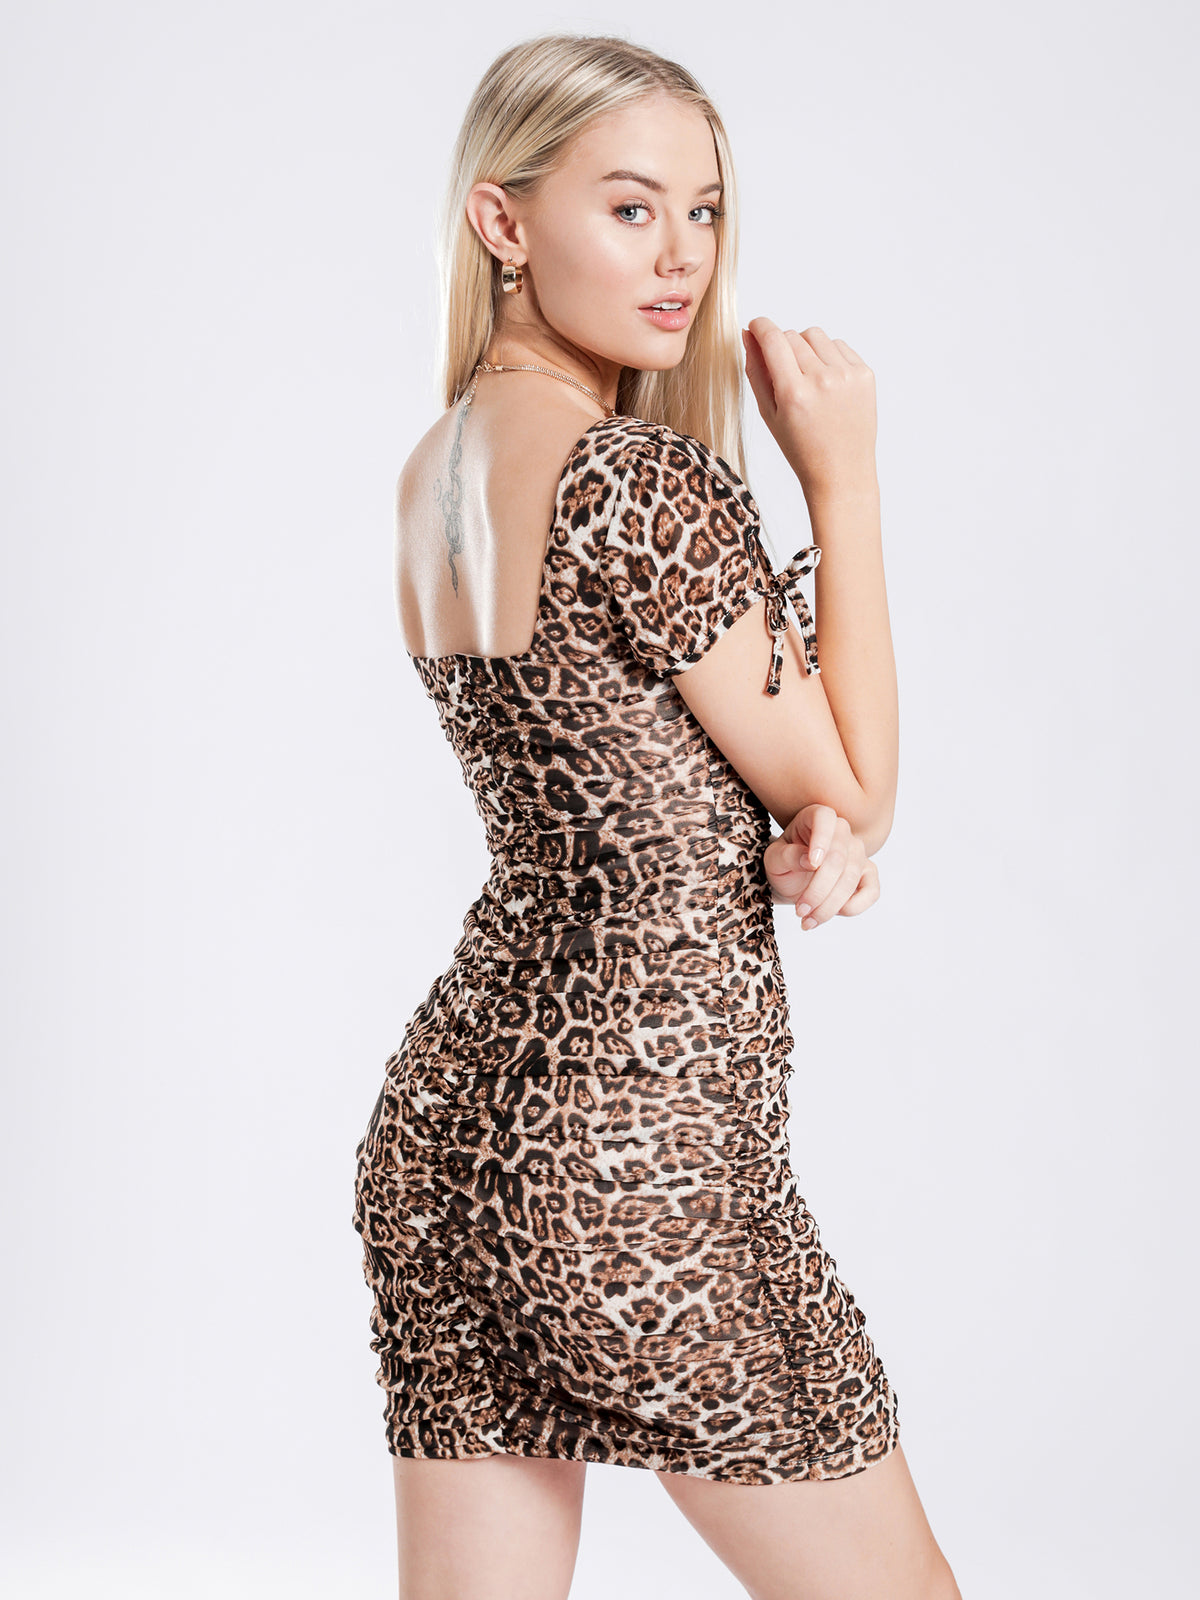 Deanna Gathered Dress in Leopard Print